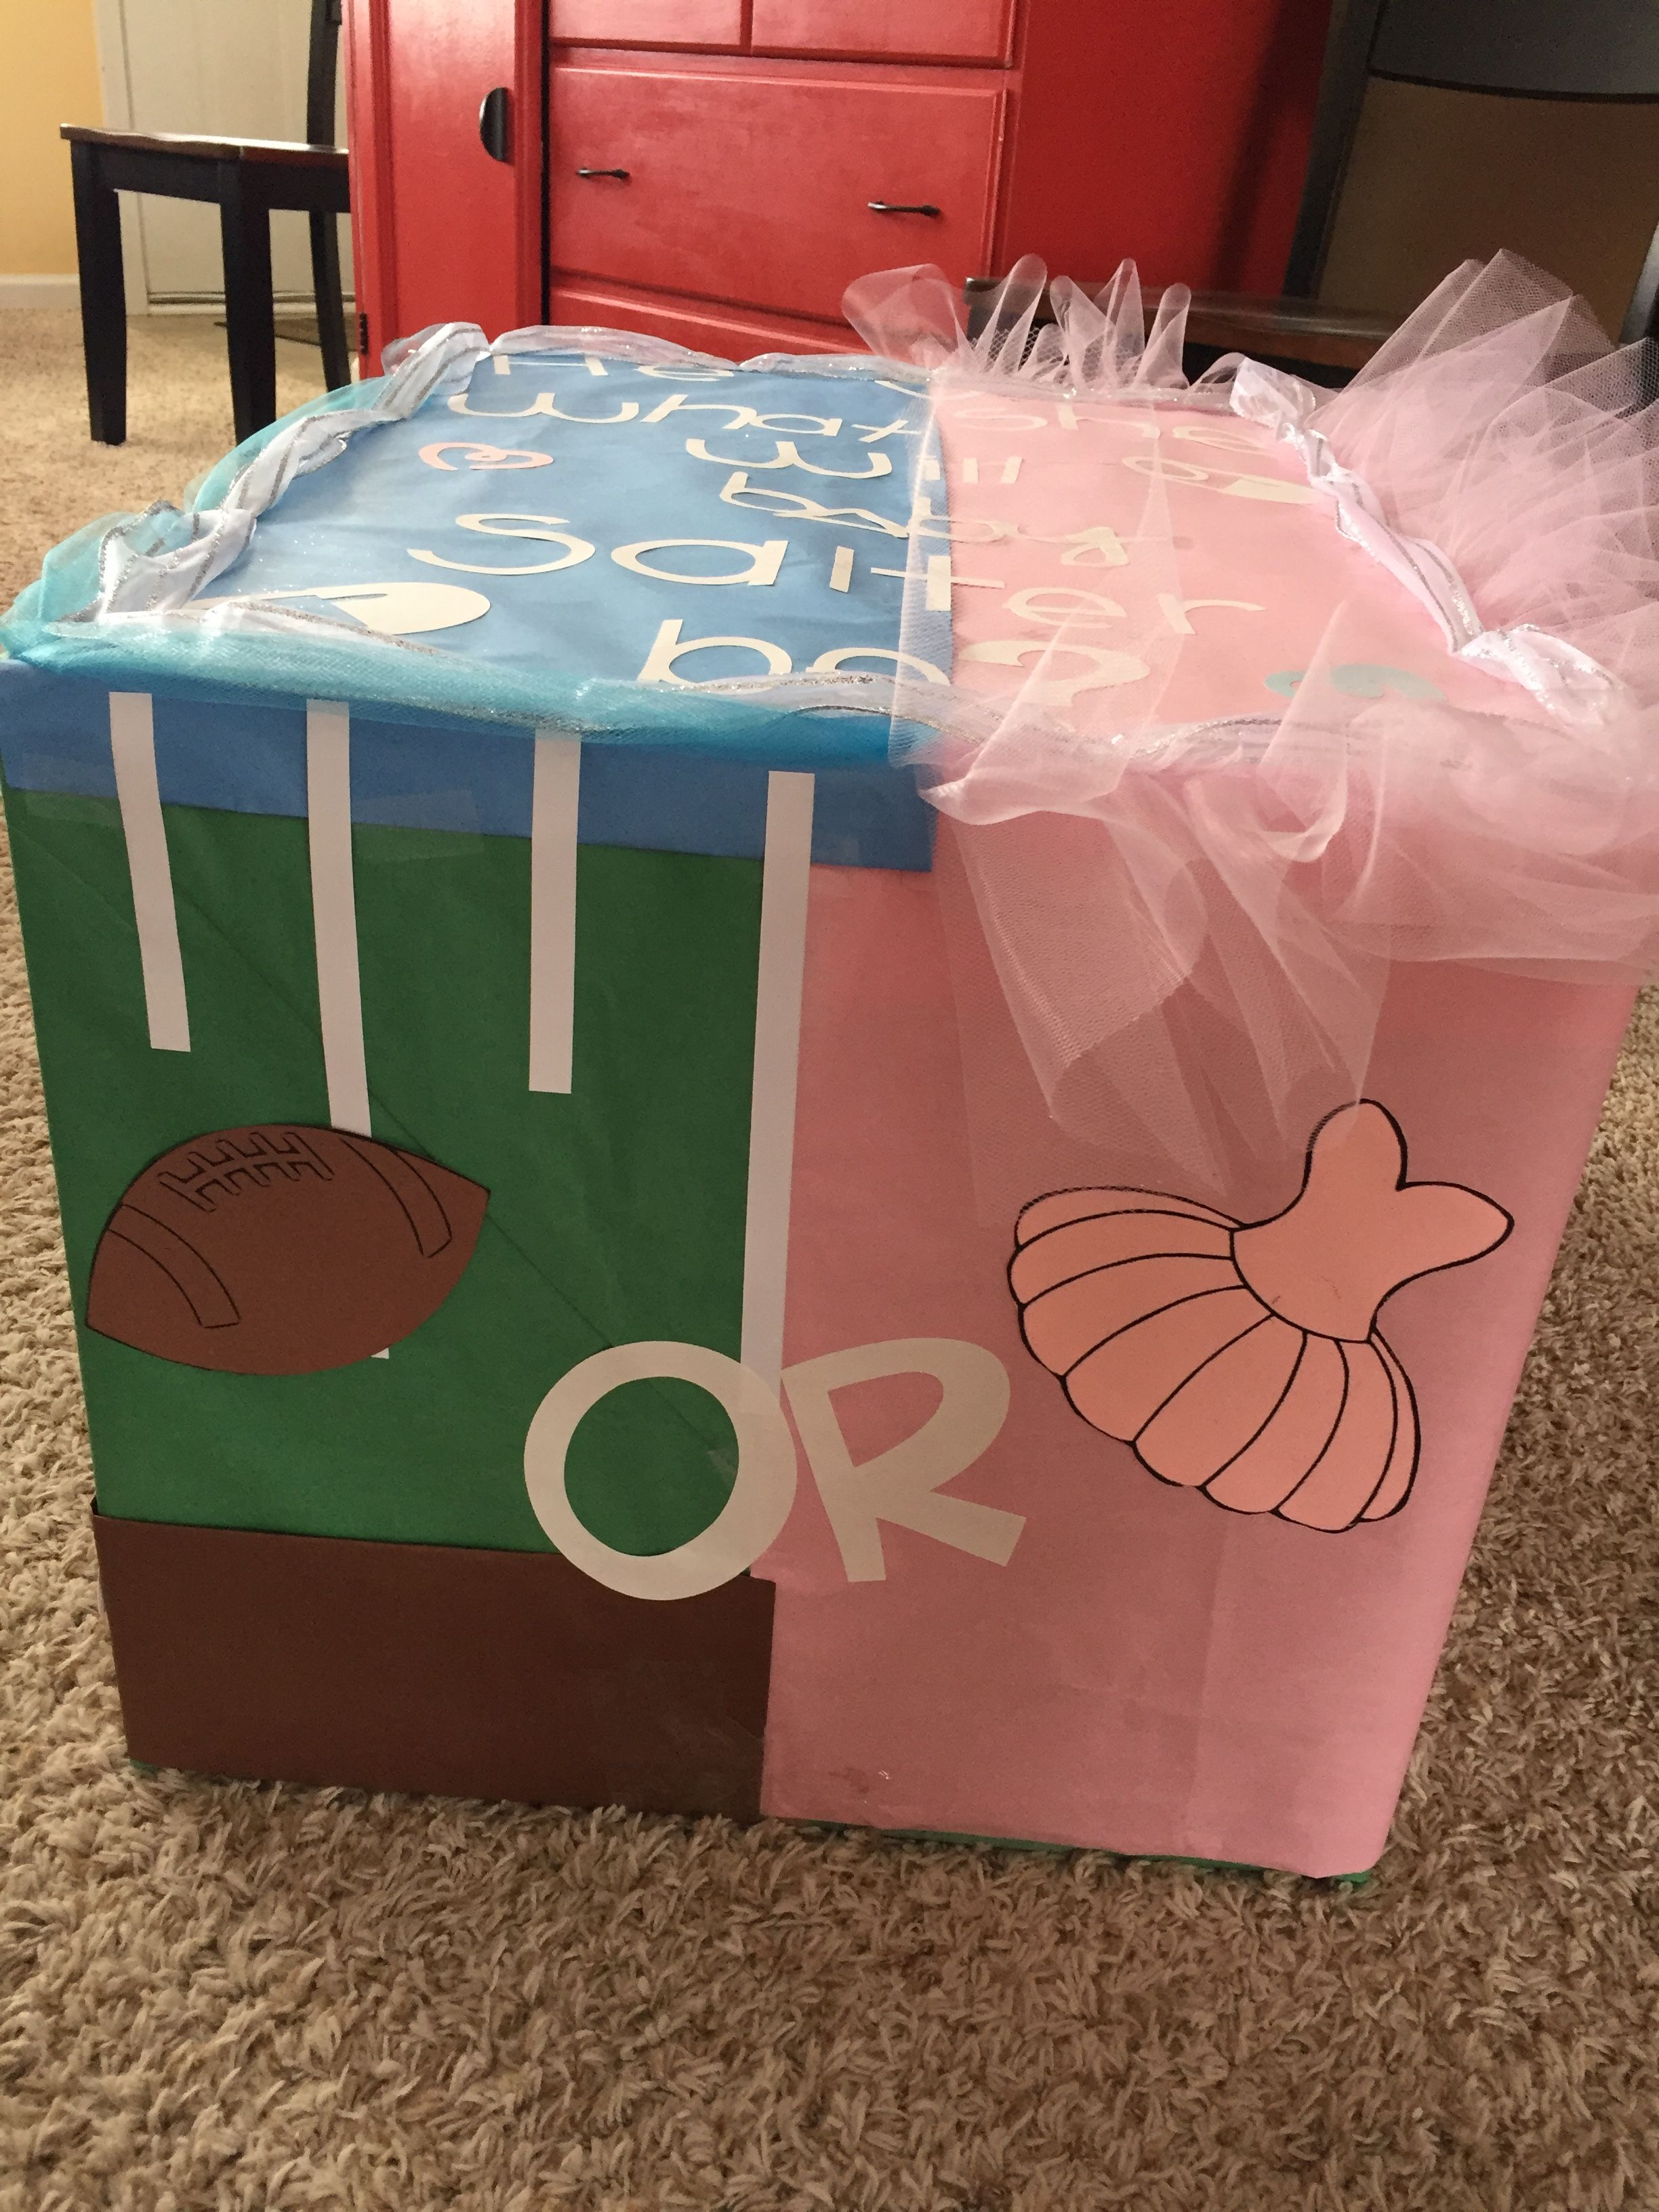 Touchdowns Or Tutus Gender Reveal Party Baby Gender Reveal Party Tutus Gender Reveal Gender Reveal Decorations